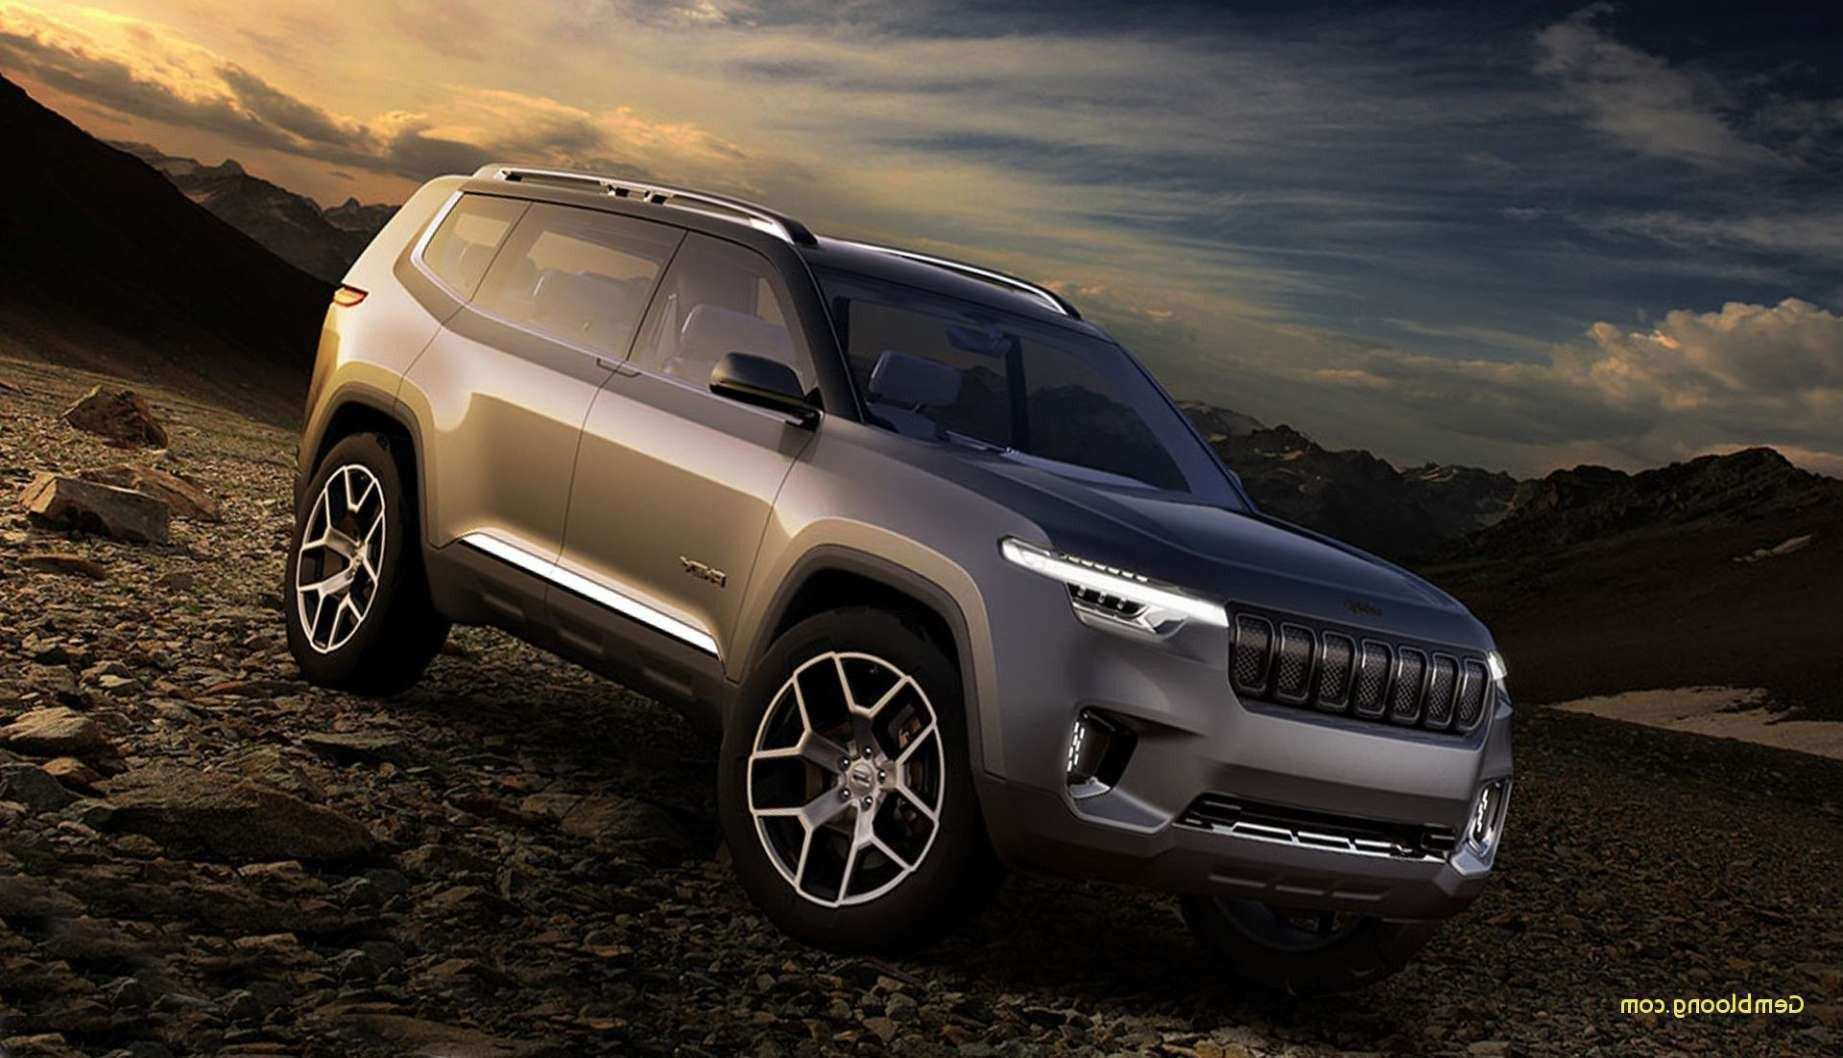 54 All New 2020 Jeep Grand Cherokee Pricing by 2020 Jeep Grand Cherokee